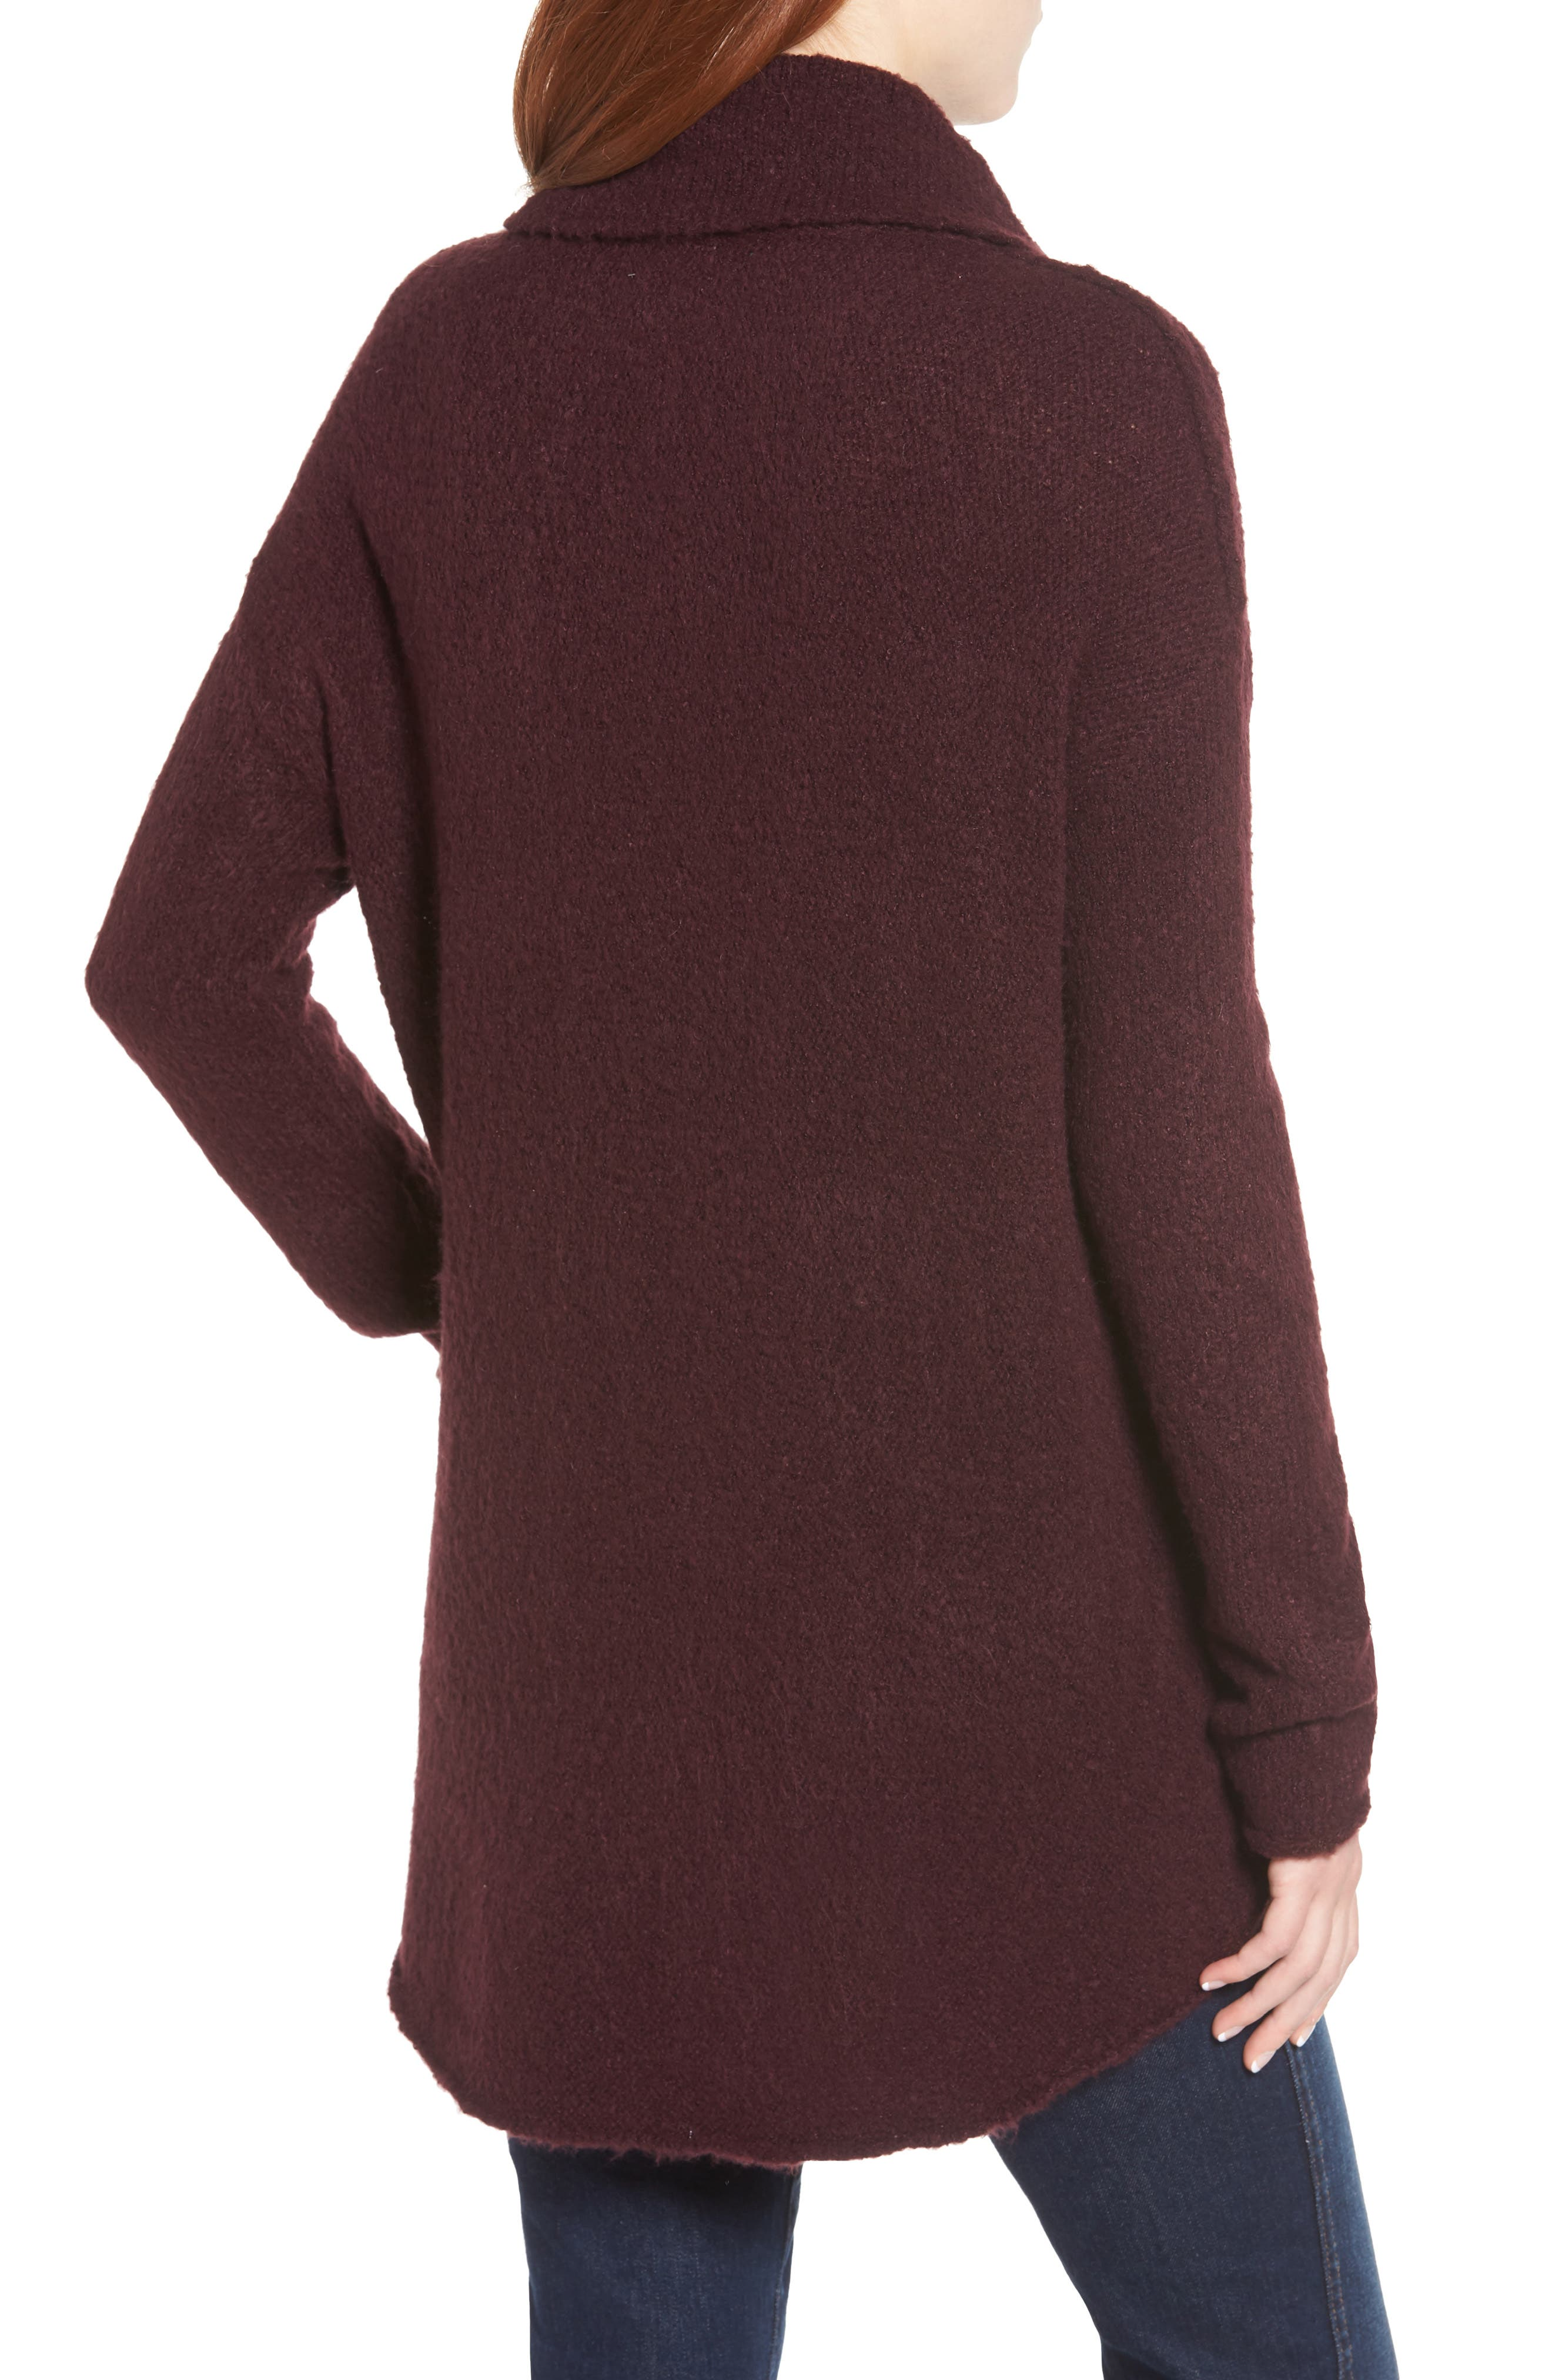 Tunic Sweater,                             Alternate thumbnail 2, color,                             BURGUNDY FIG